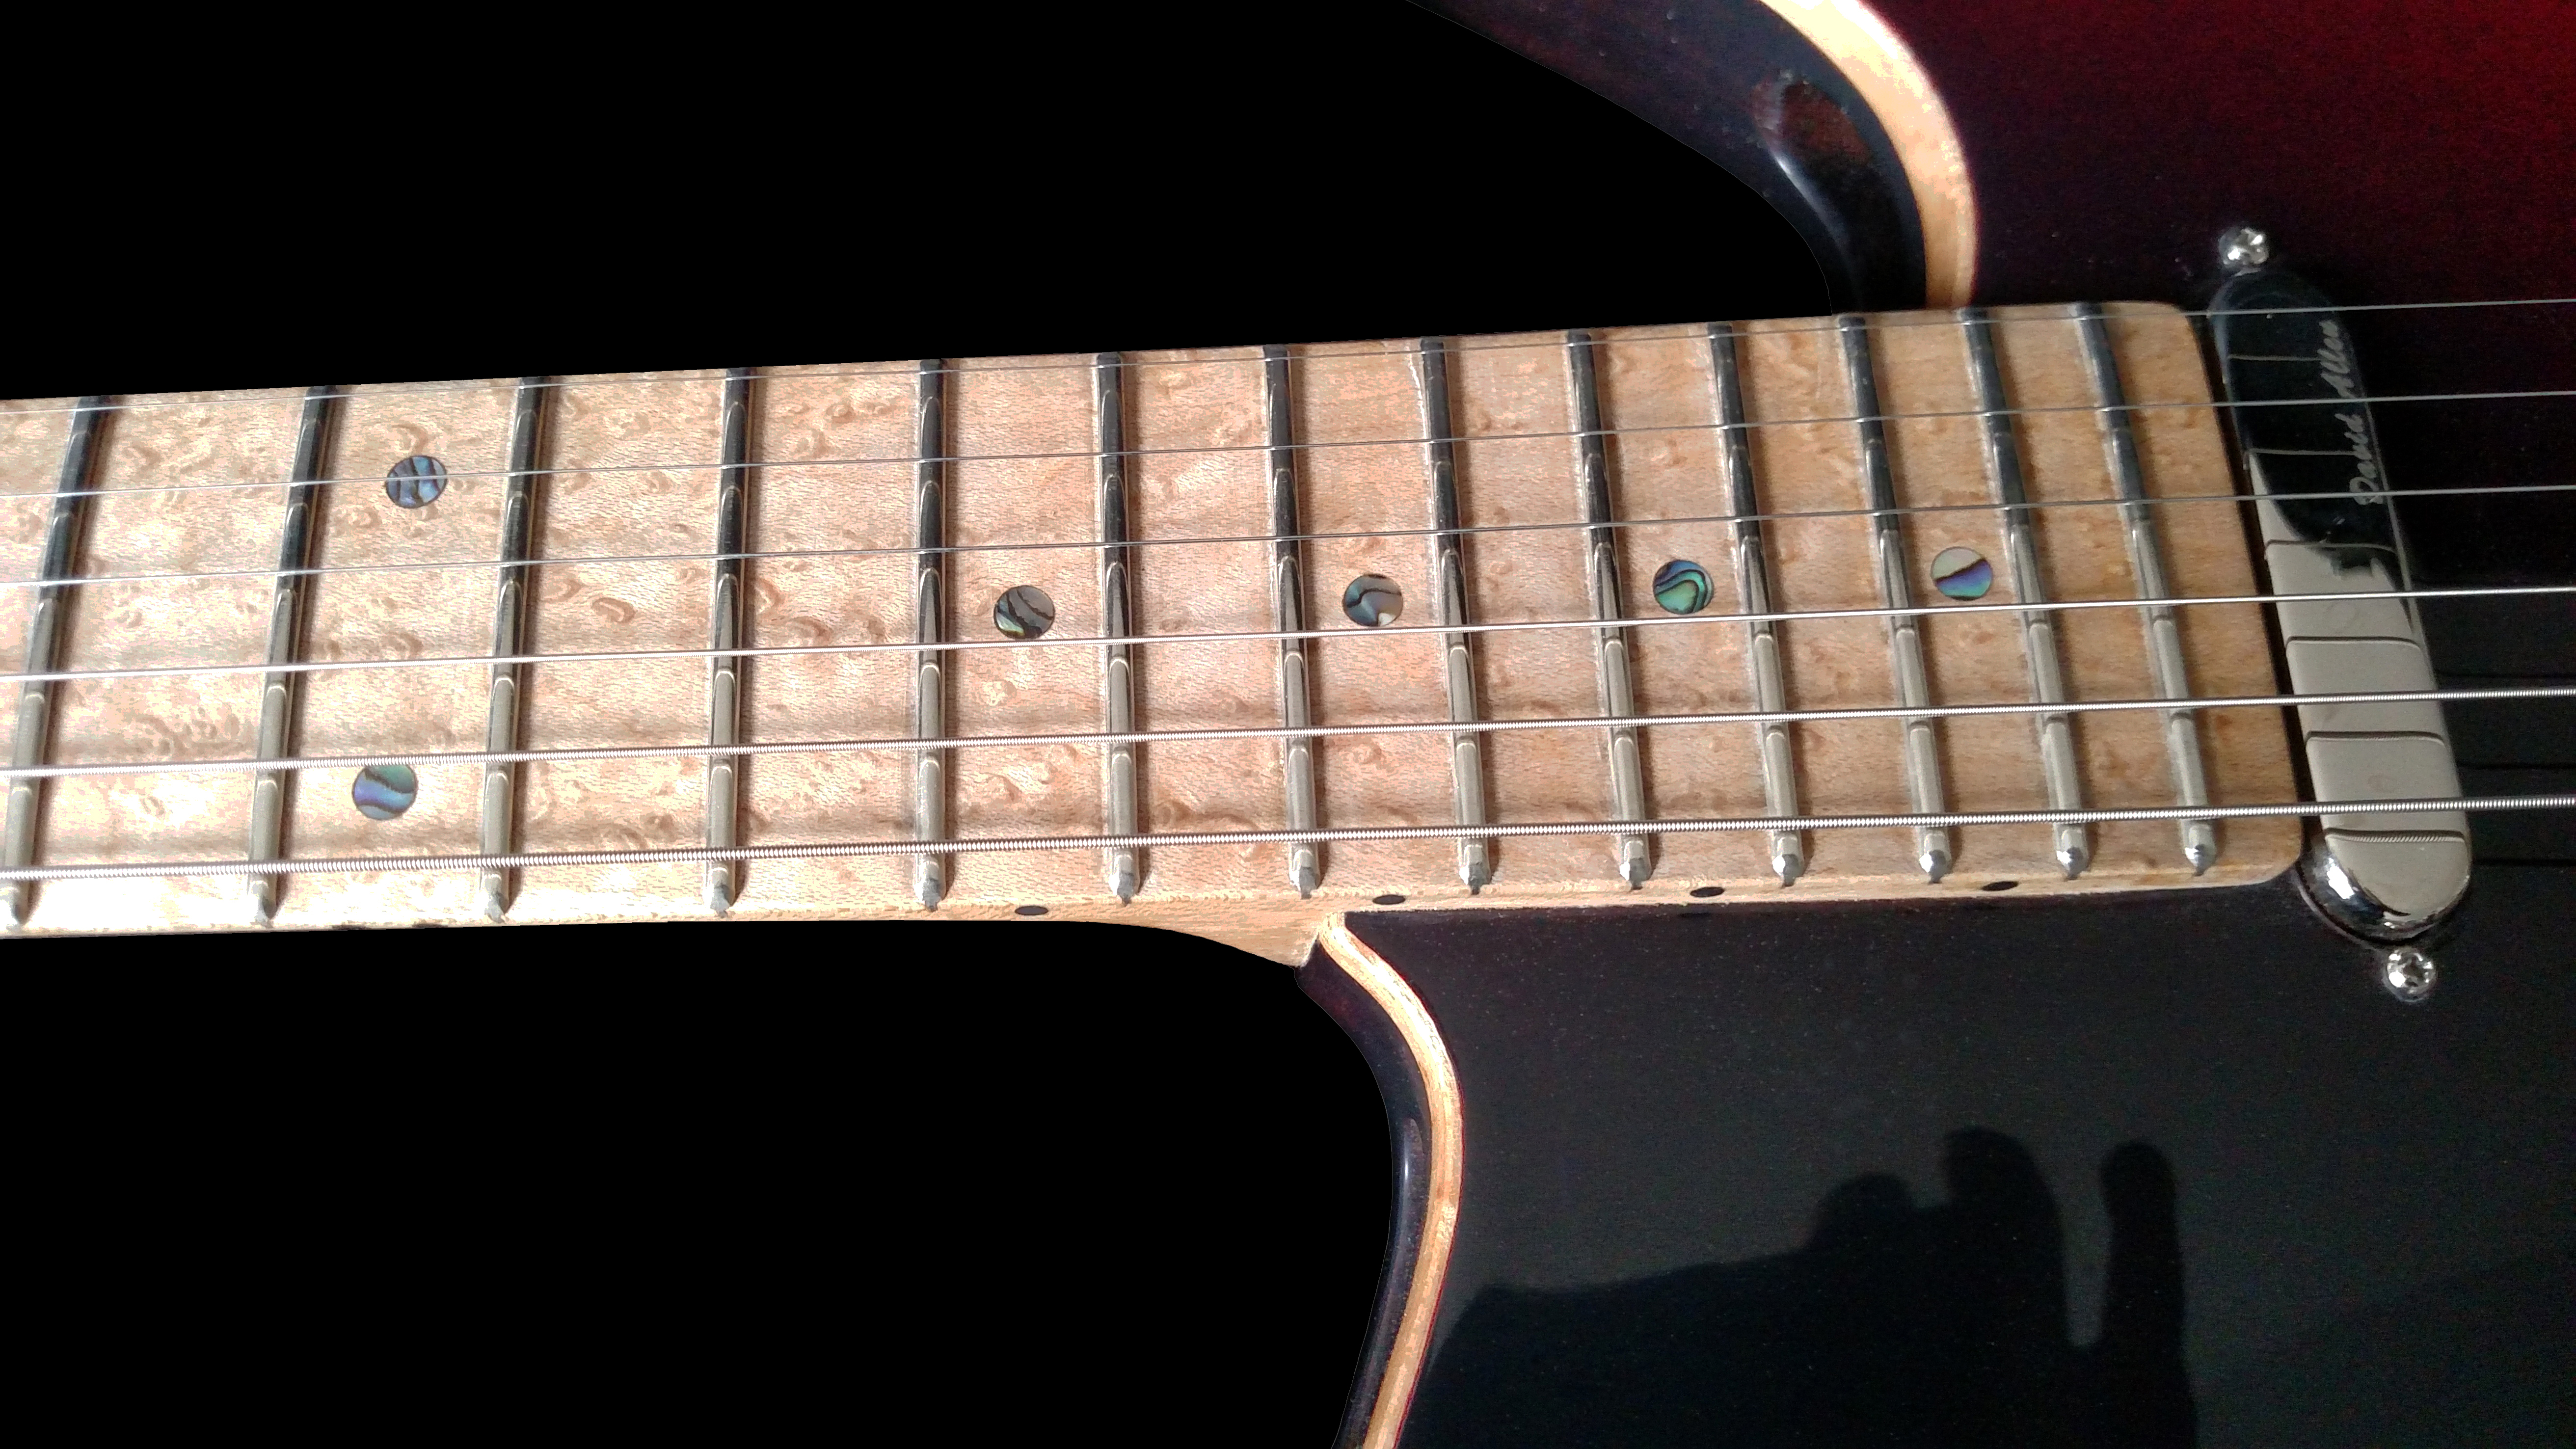 Birdseye neck, Commissioned ordered guitar. Hand crafted work by guitar maker, King Blossom Guitar